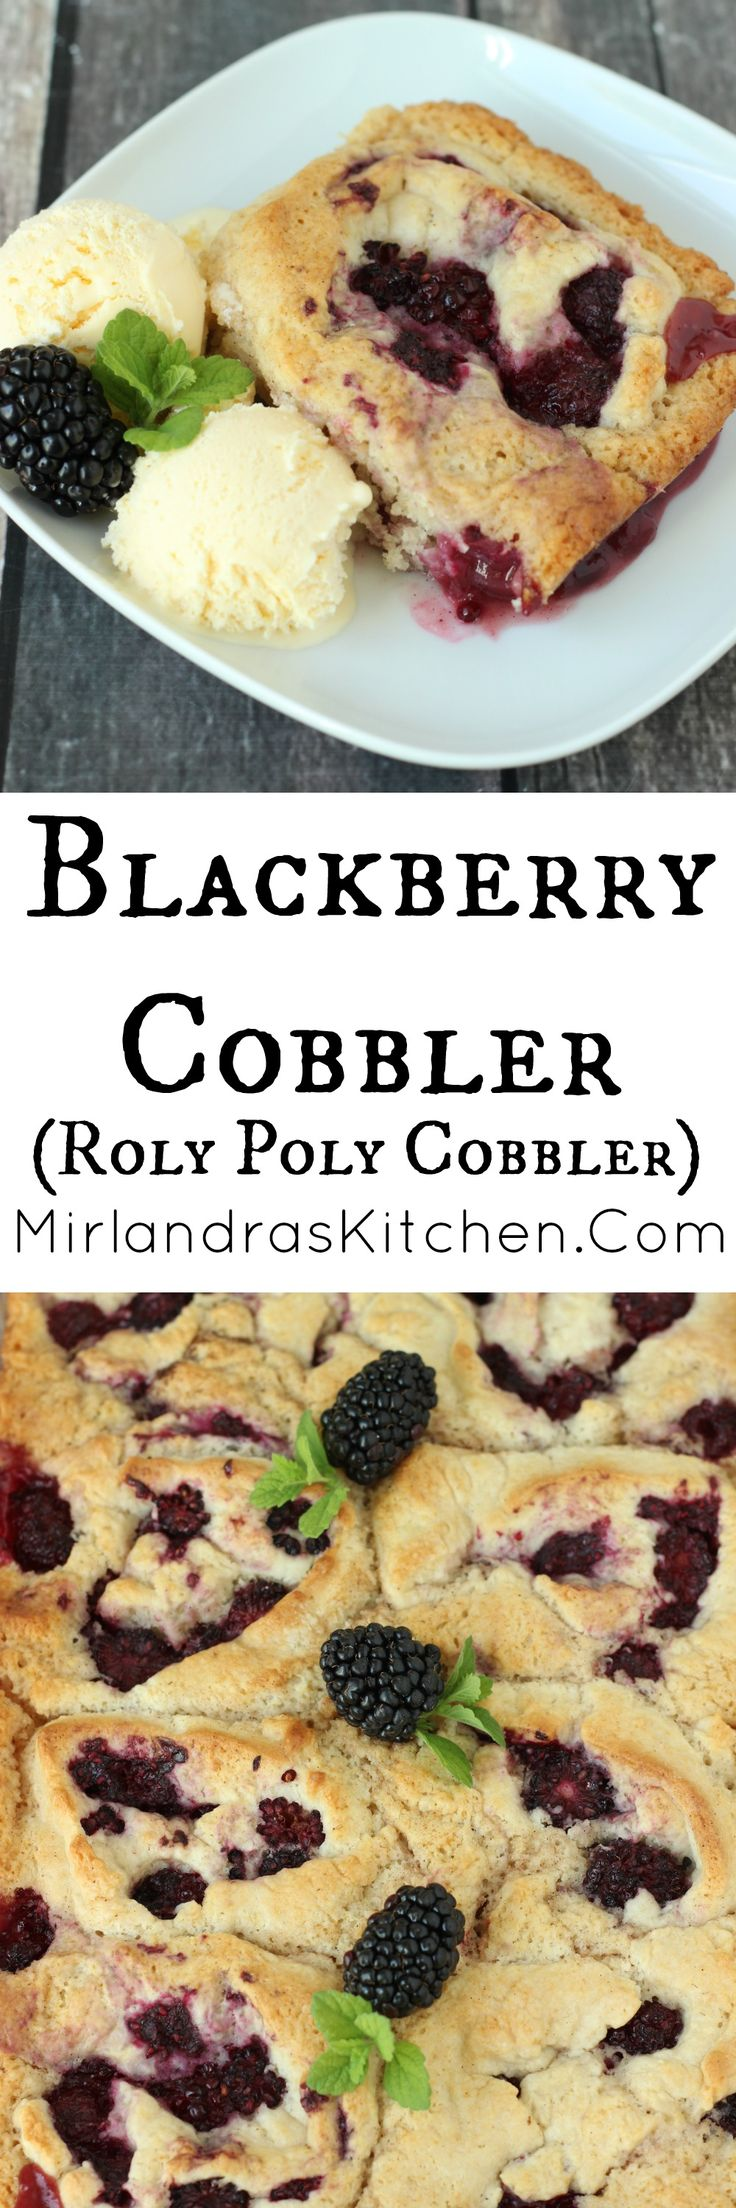 """This old fashioned recipe for Blackberry Cobbler is a gem.  It calls for Bisquick which keeps things simple but the final results taste like homemade hard work!  The secret is in the syrup used to bake the rolls.  It creates a wonderful sweet treat with crunchy edges and succulent blackberries! (This recipe also goes by the names """"Diddle Diddle Dumplings"""" and """"Blackberry Roll Ups."""""""